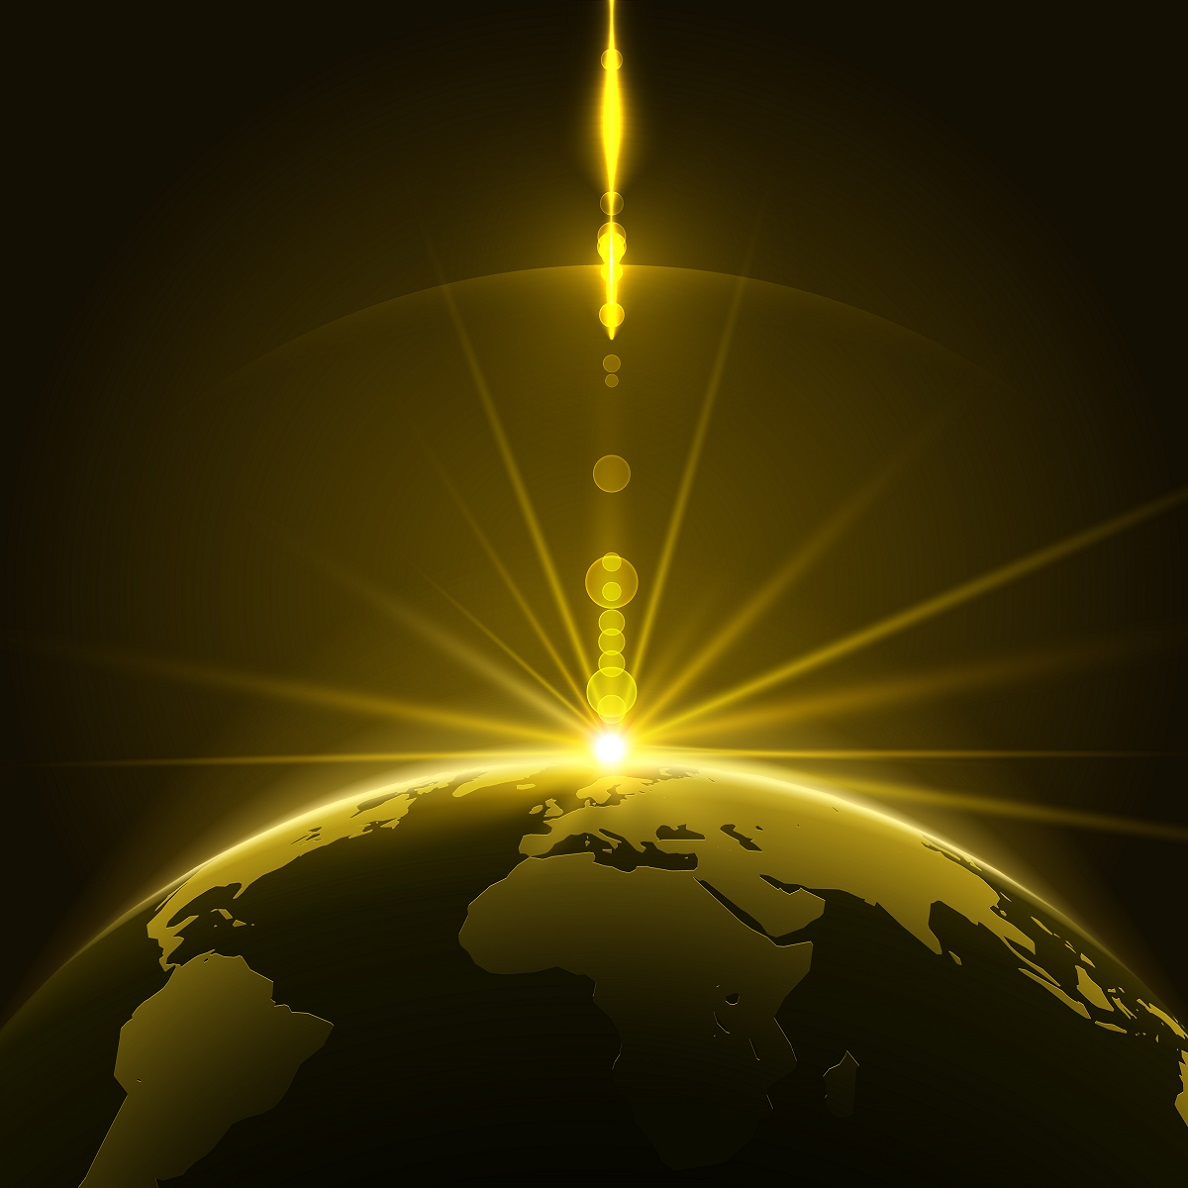 Abstract Shining Sun Over the Planet Earth in the Universe Background. Vector Illustration